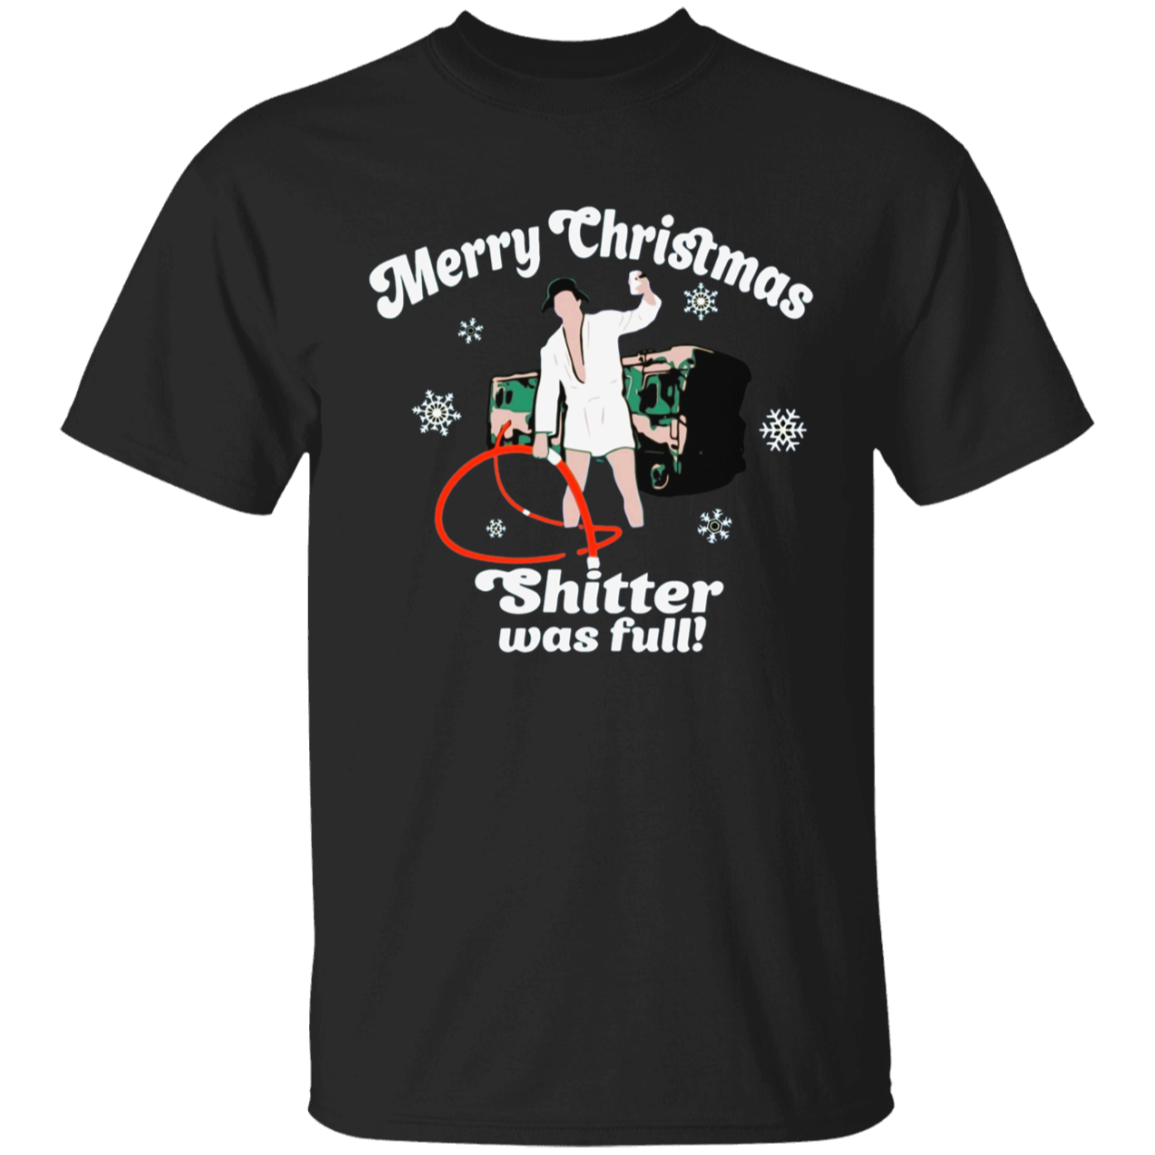 Merrychristmas T-shirt Cousin Eddie Shitter Was Full